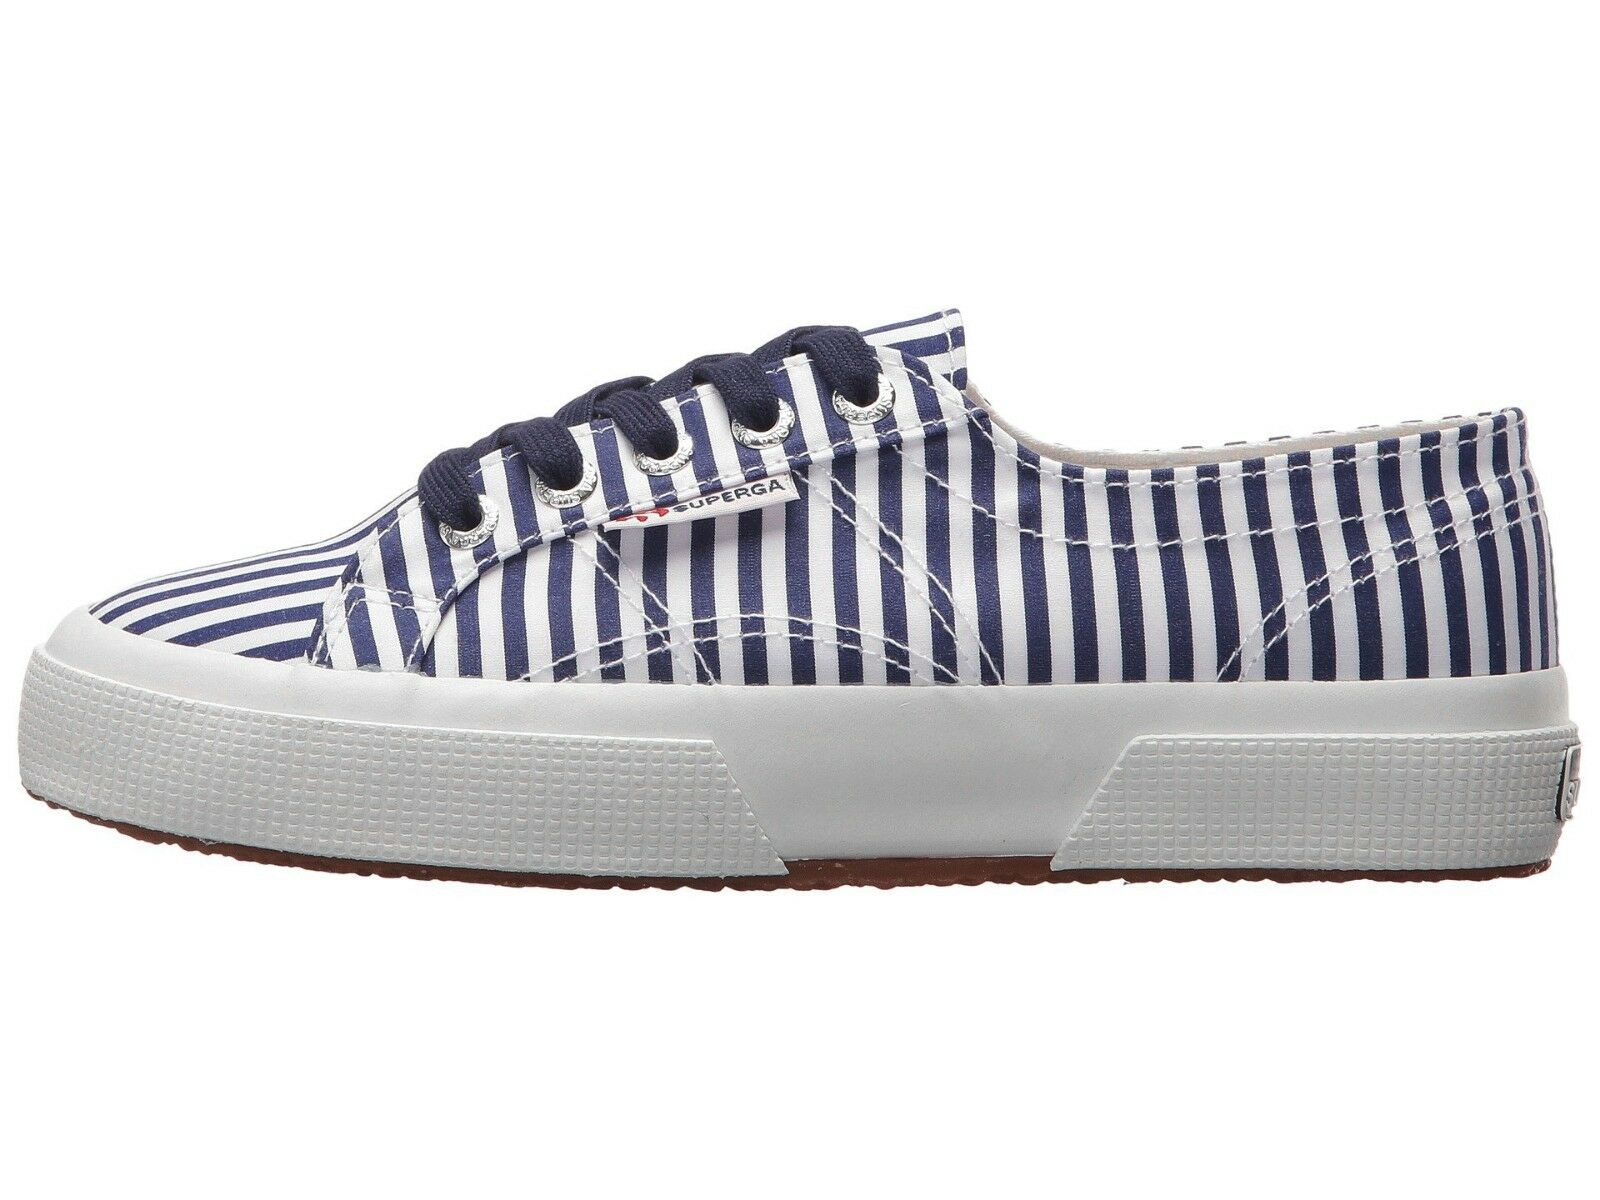 Superga 2750 FABRICSHIRTU  Lace-Up Sneaker Navy Stripe Size US Women 9.5